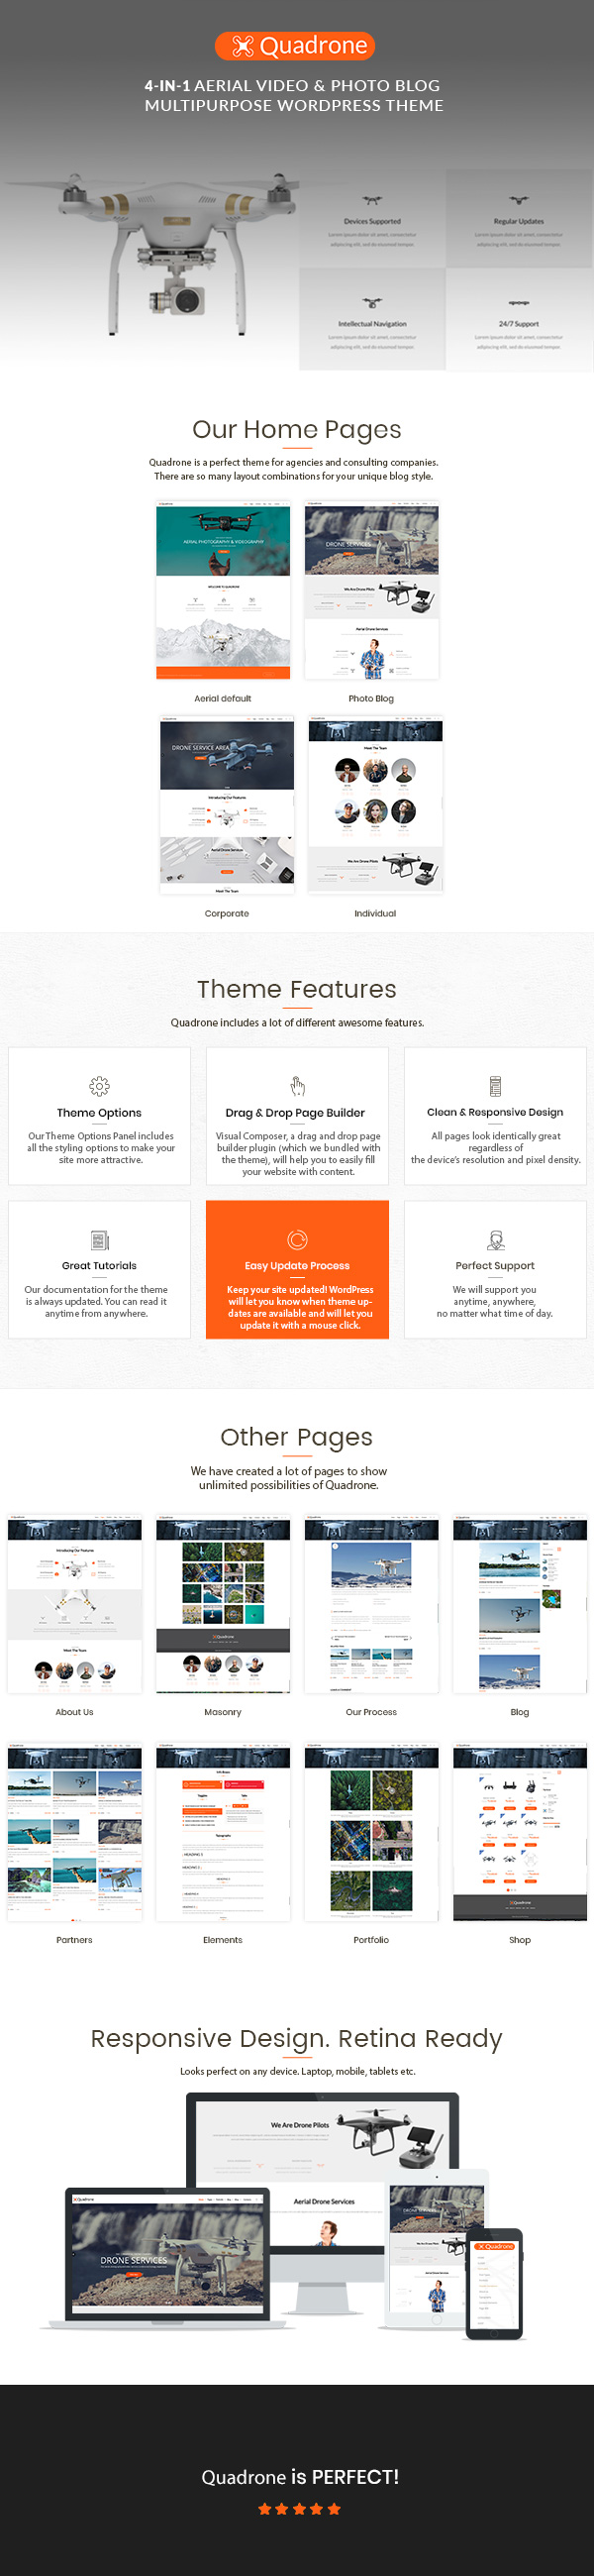 wordpress subcategory template - quadrone aerial photo video blog wordpress theme